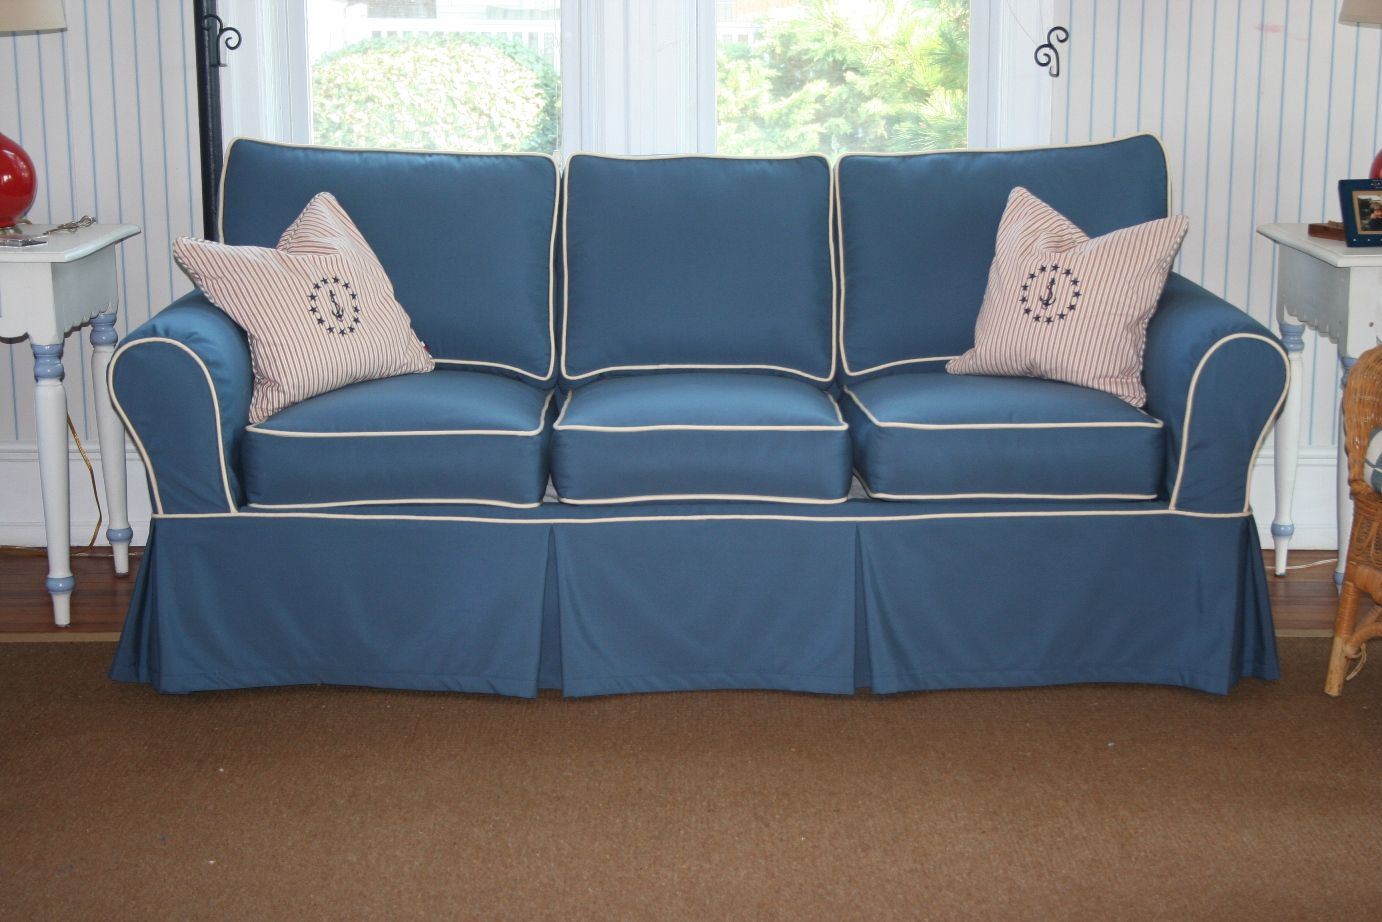 Sofa Slipcover Using Sunbrella Sapphire Blue With Vellum Cording Nautical  And Fun Pillows Too!